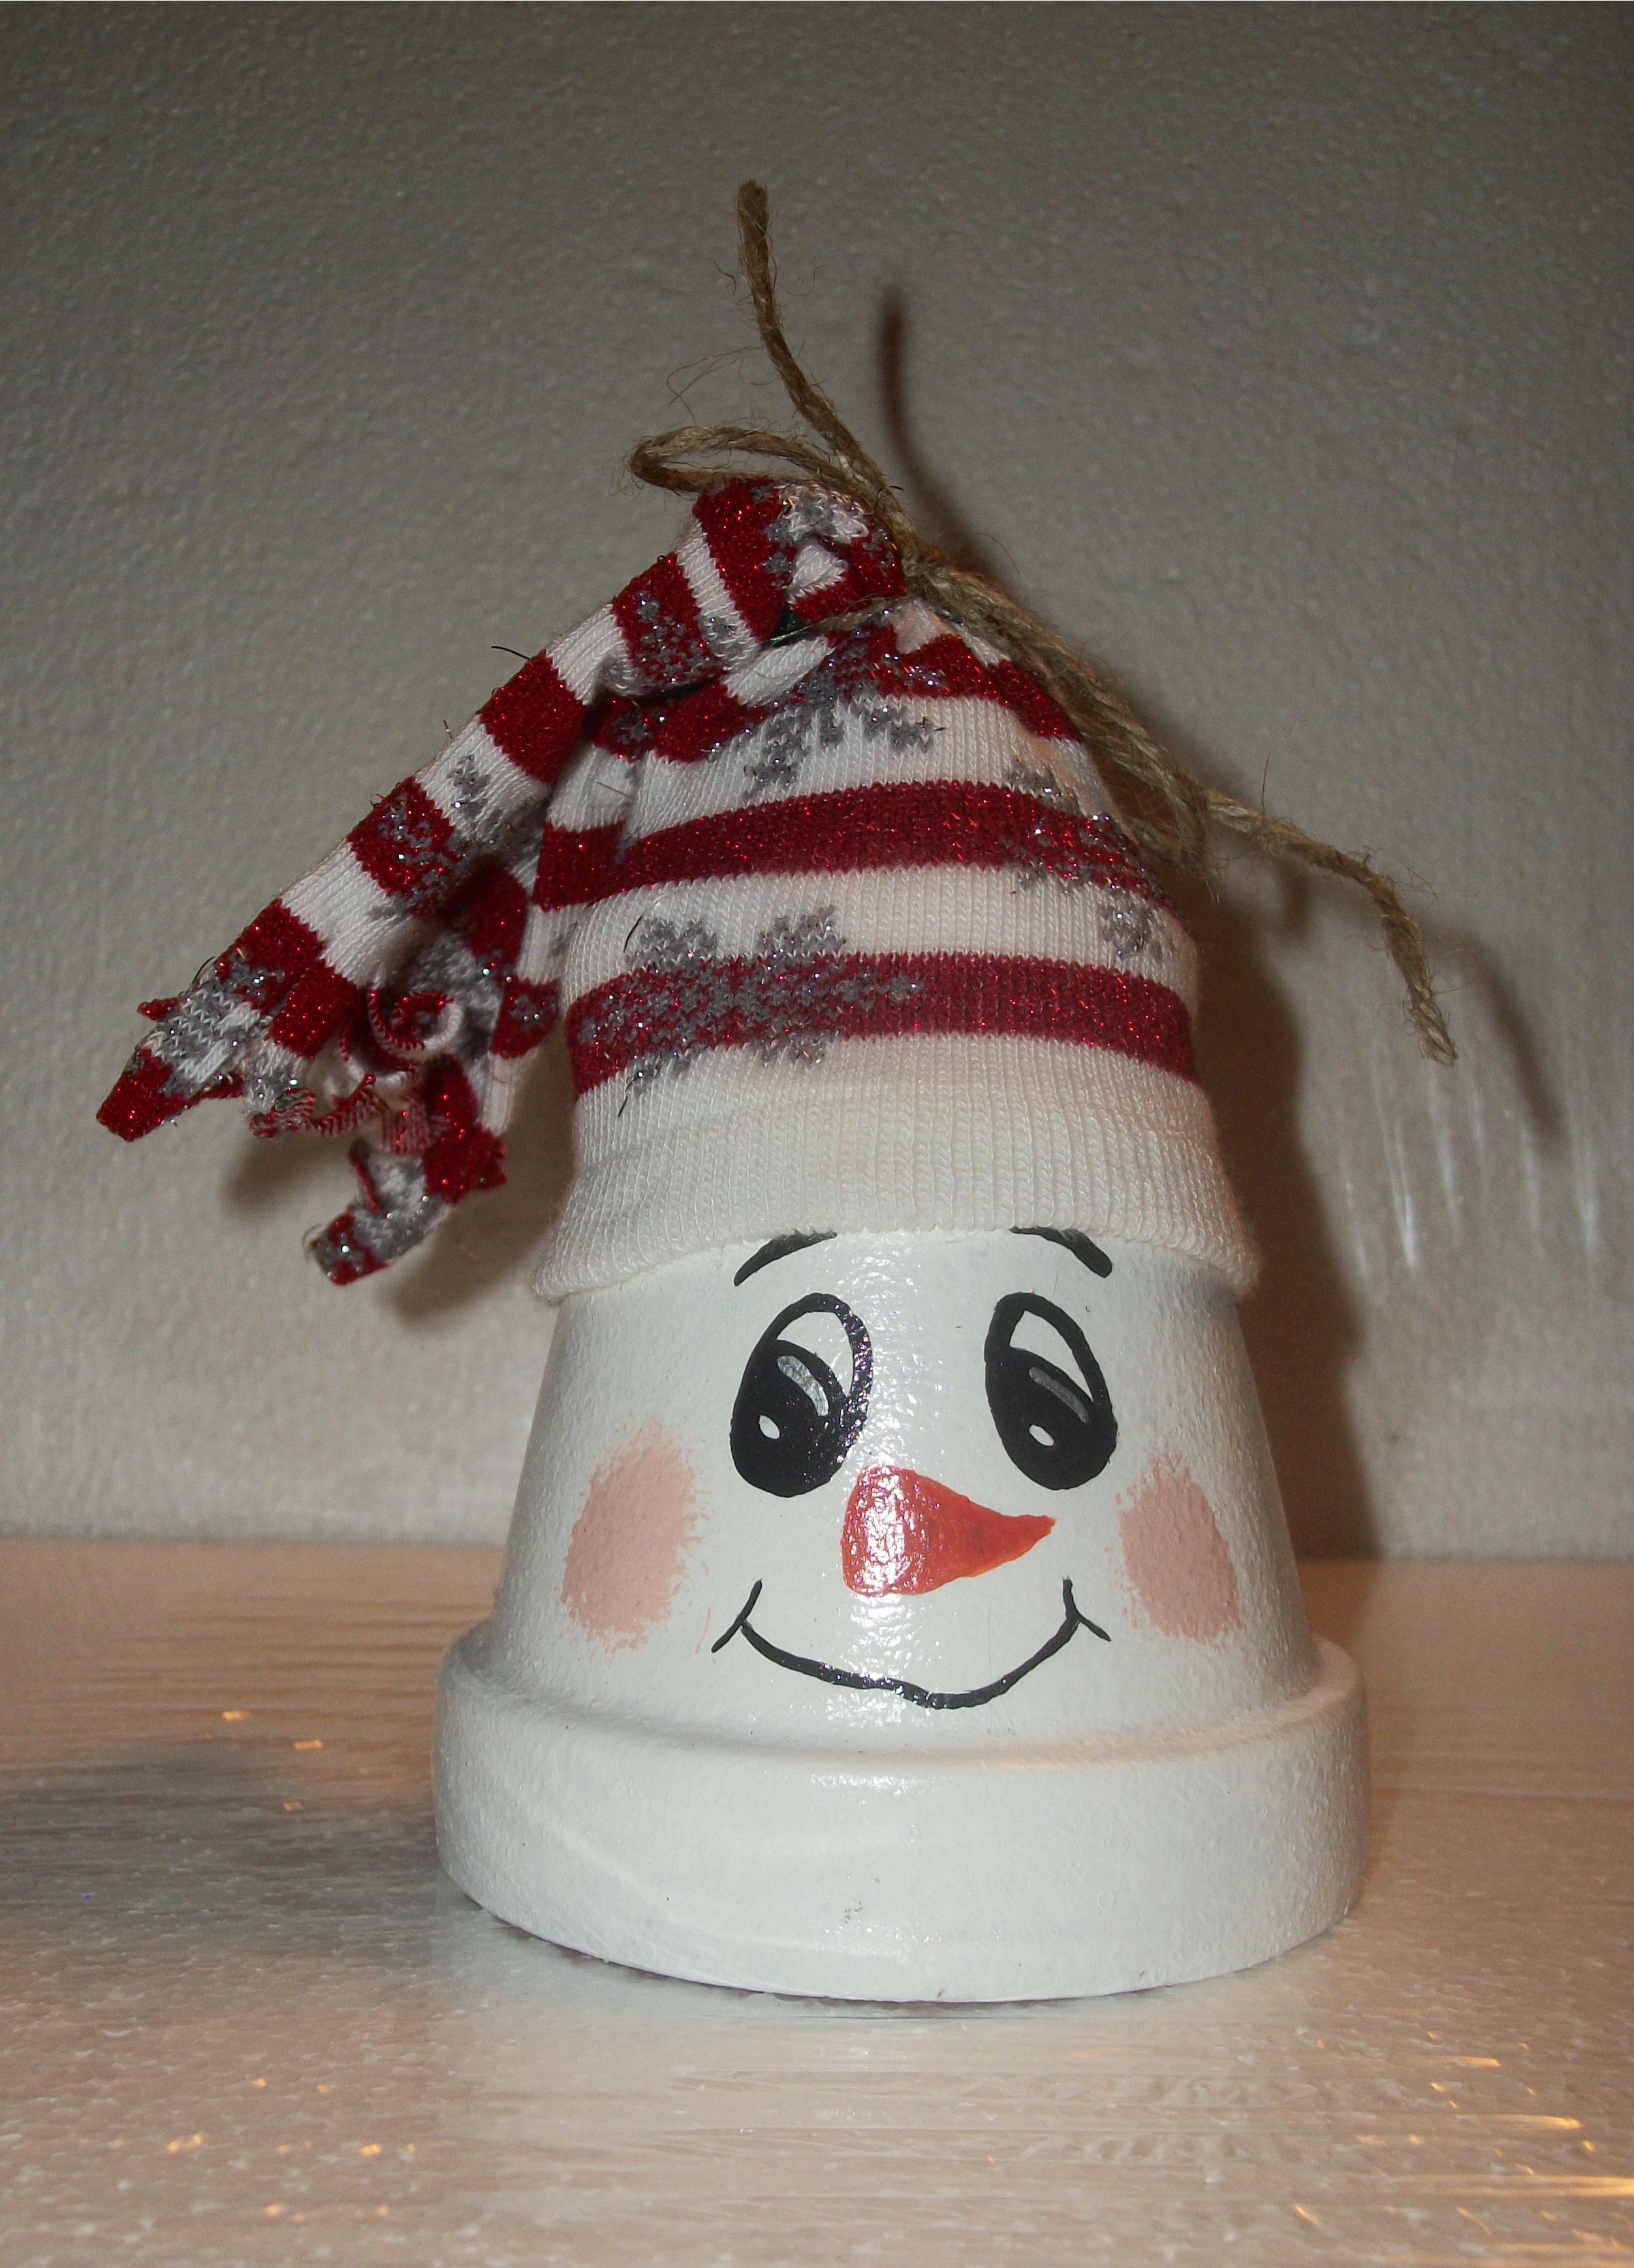 Basteln Mit Tontöpfen Weihnachten Small Clay Pot Snowman Topped With Christmas Sock